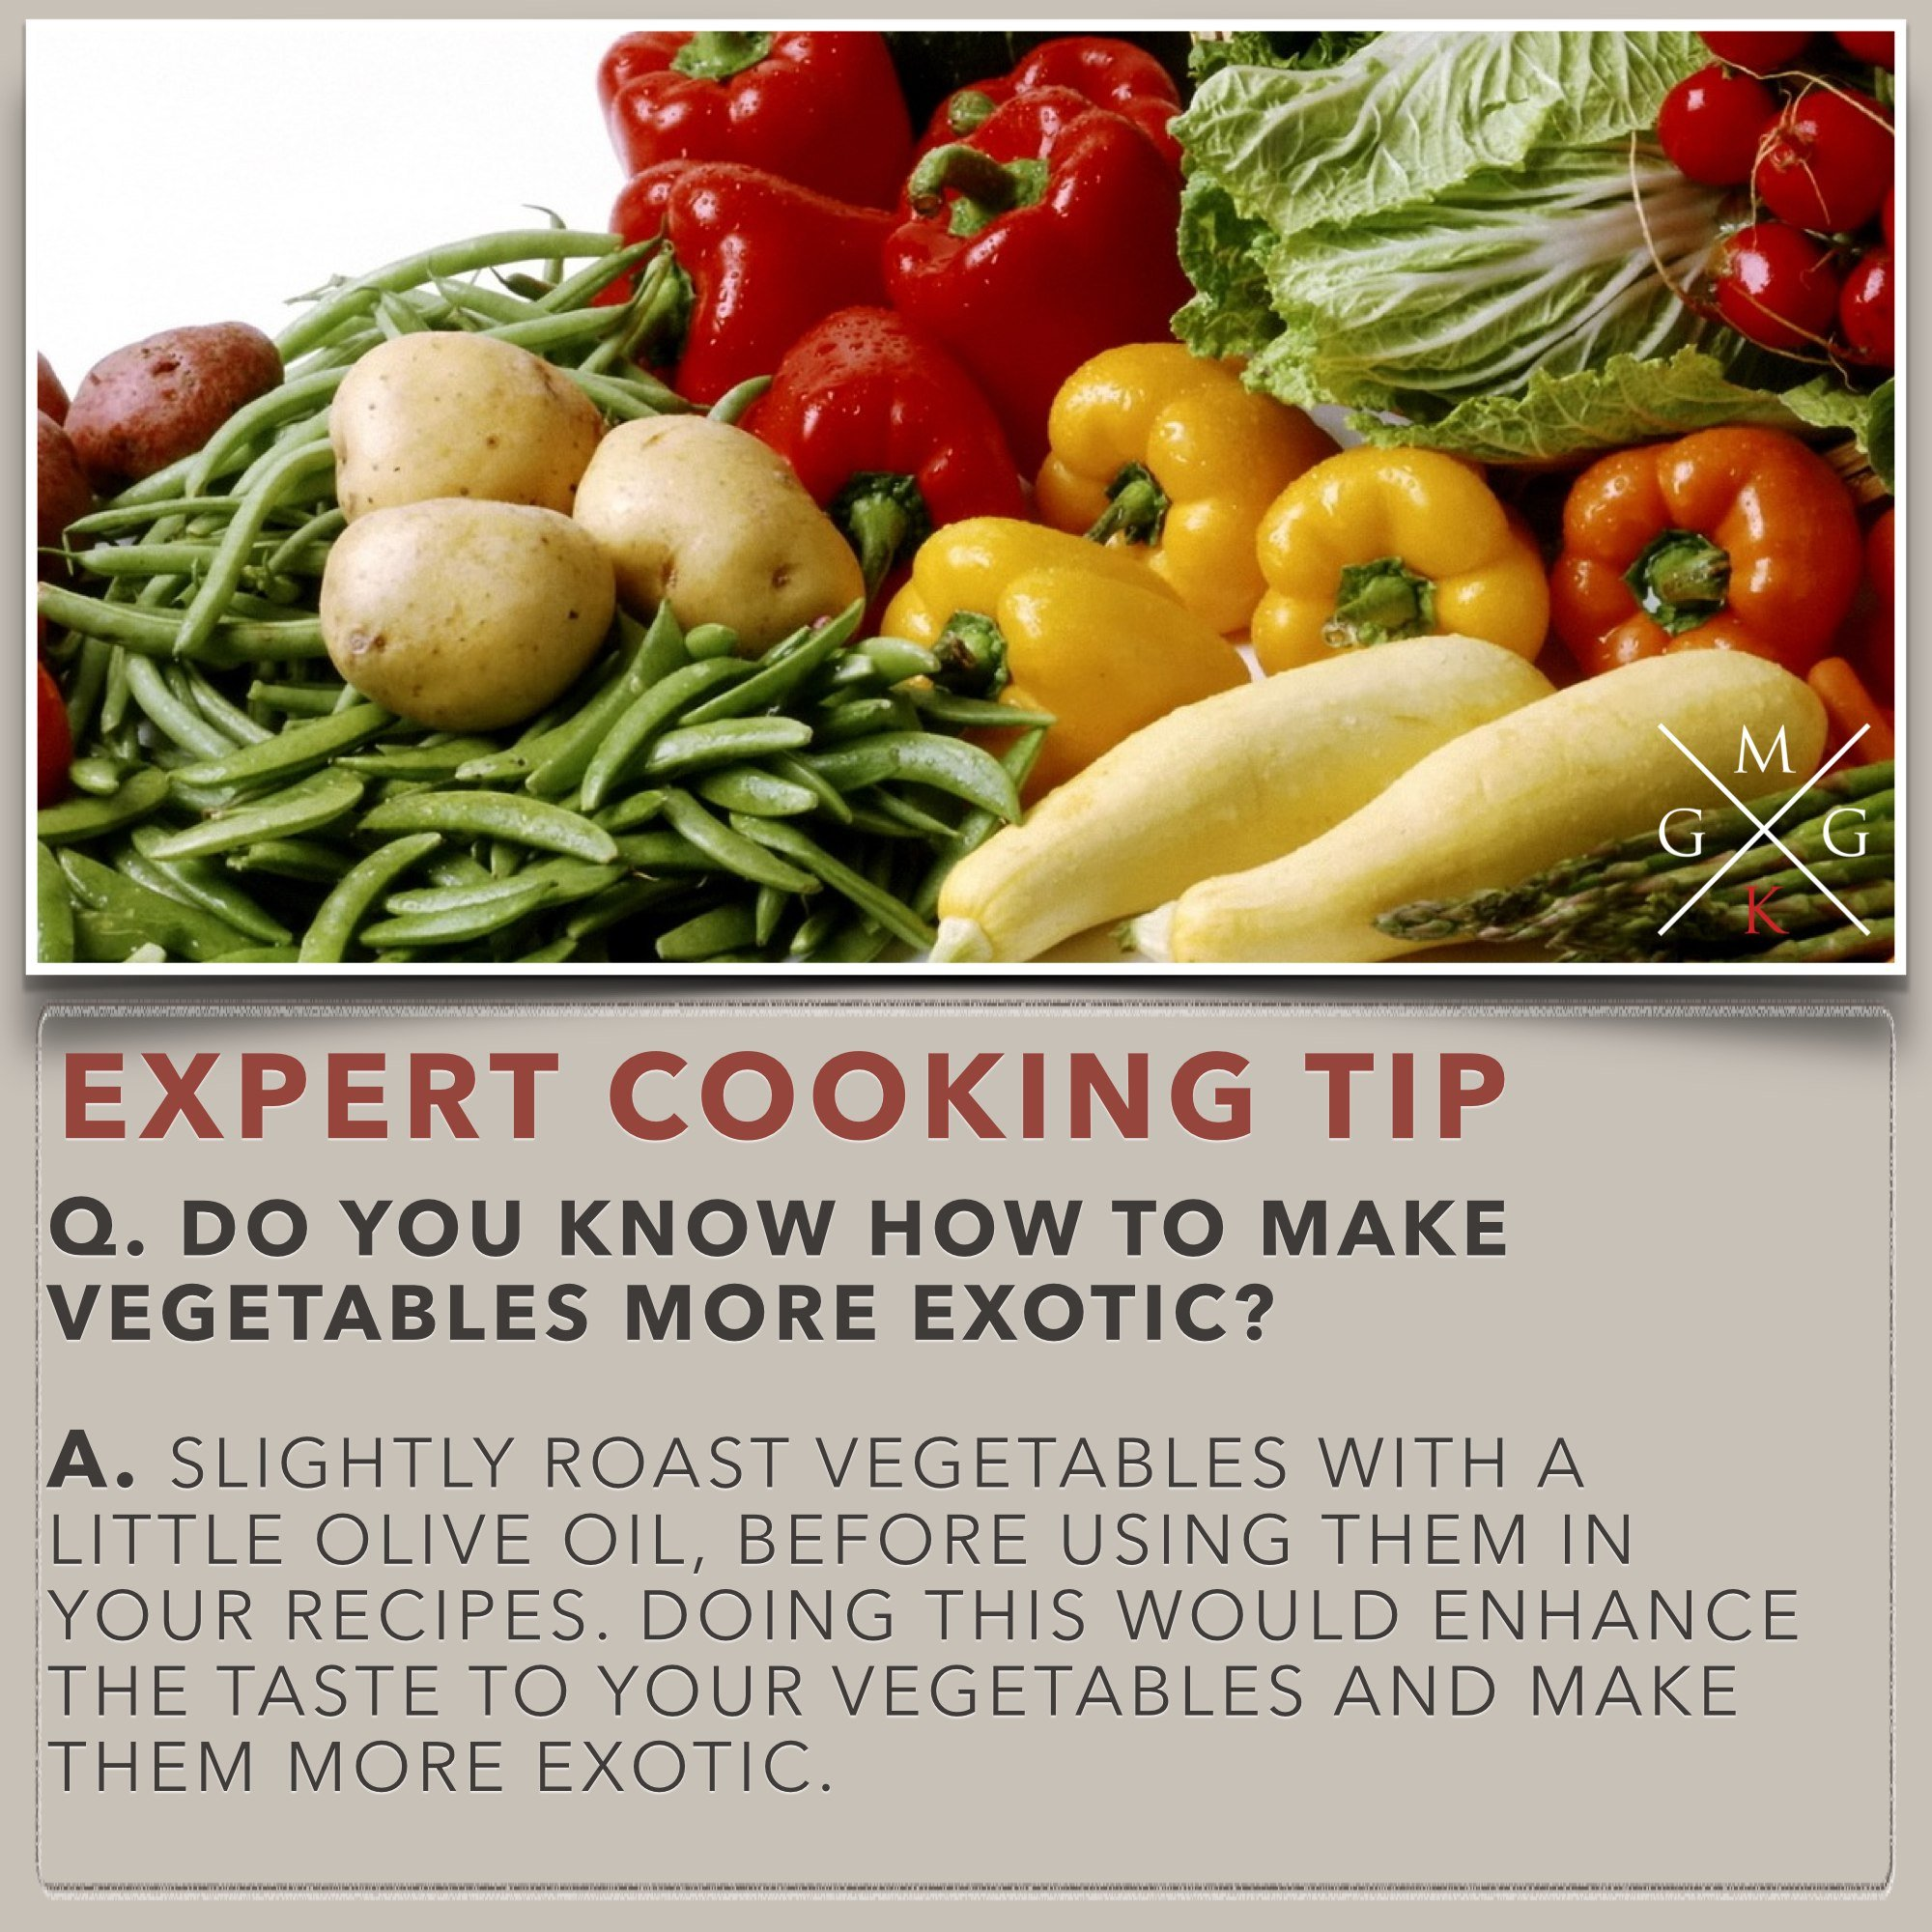 Kitchen Hacks India: Do You Know How To Make Vegetables More Exotic [Cooking